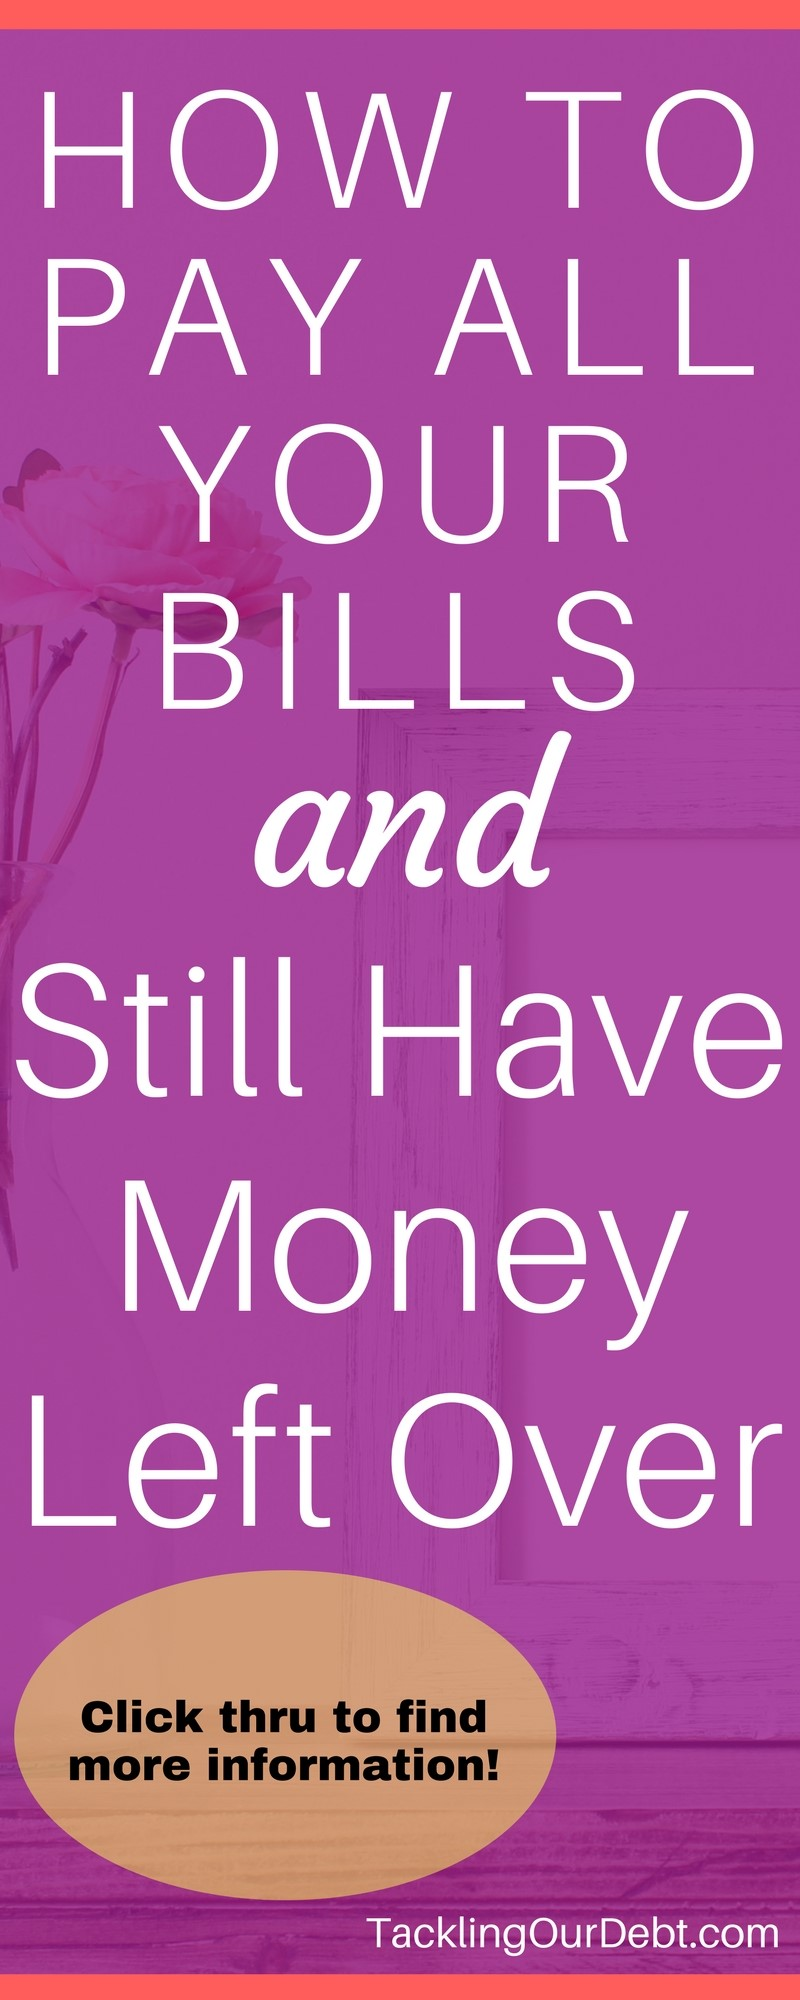 How to Pay All Your Bills and Still Have Money Left Over Because You Know How to Stretch a Dollar. Click thru to learn more!